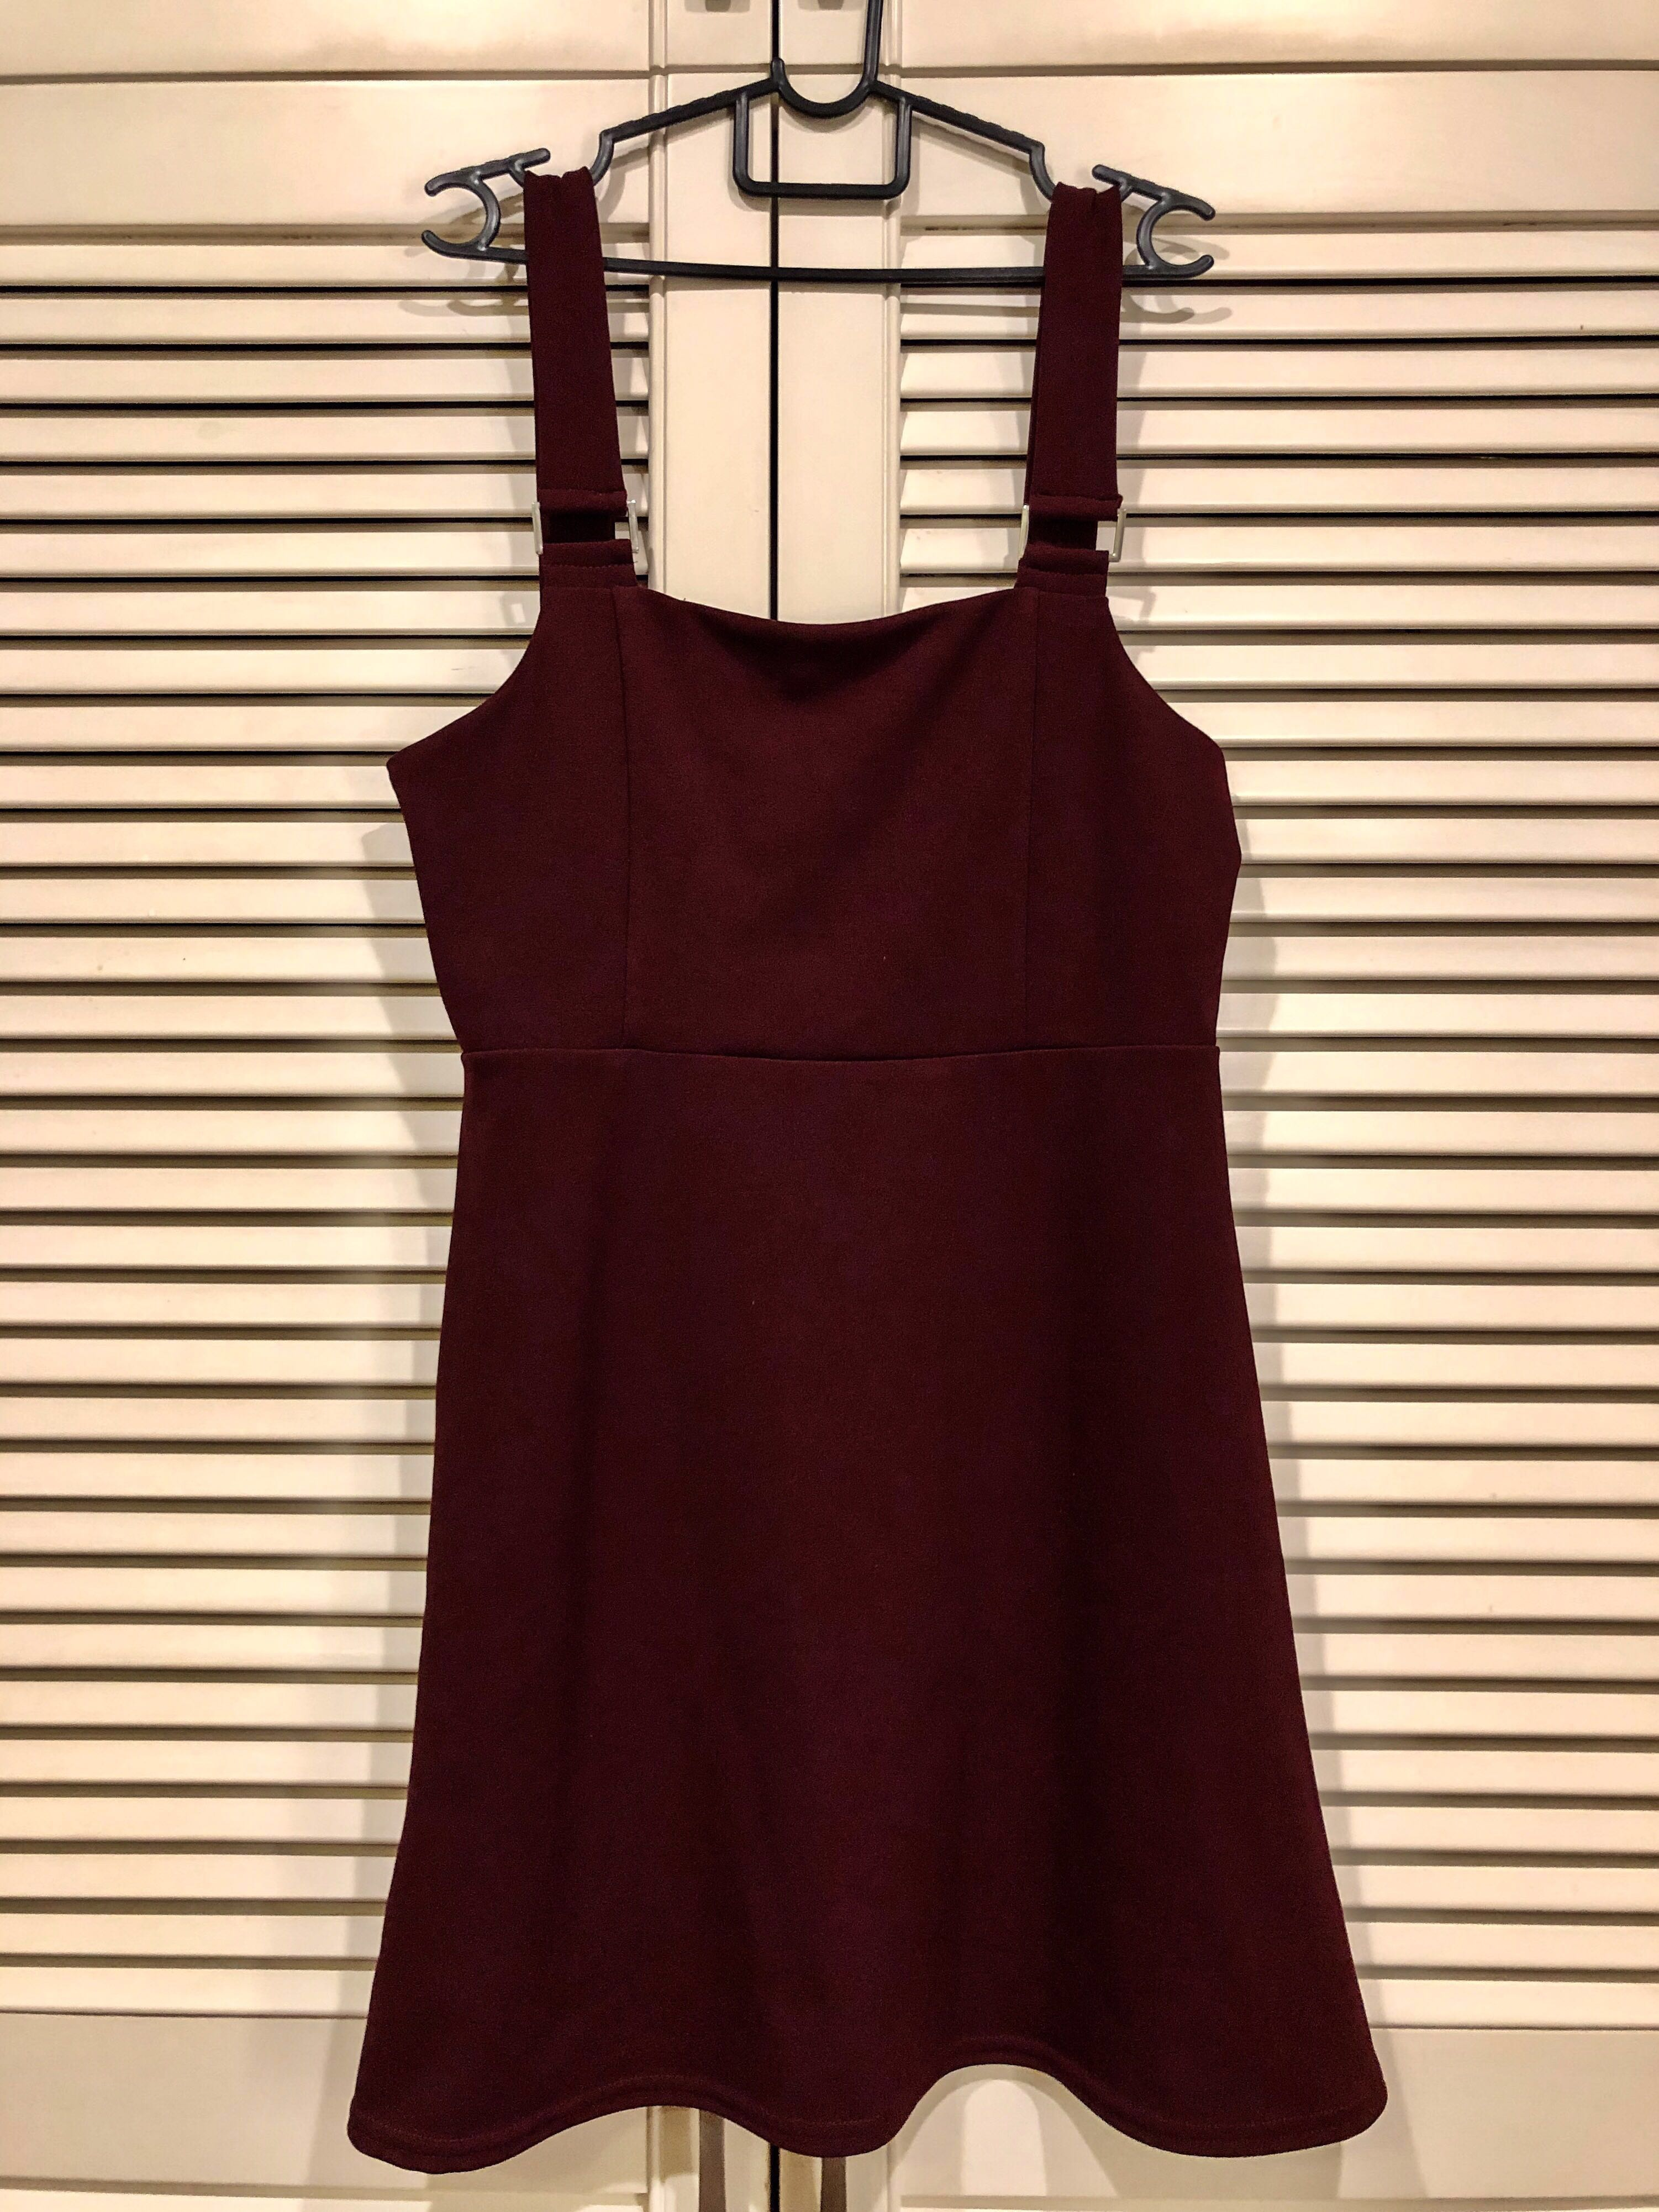 76dedc798c26 New Look Maroon Pinafore Dress, Women's Fashion, Clothes, Dresses & Skirts  on Carousell